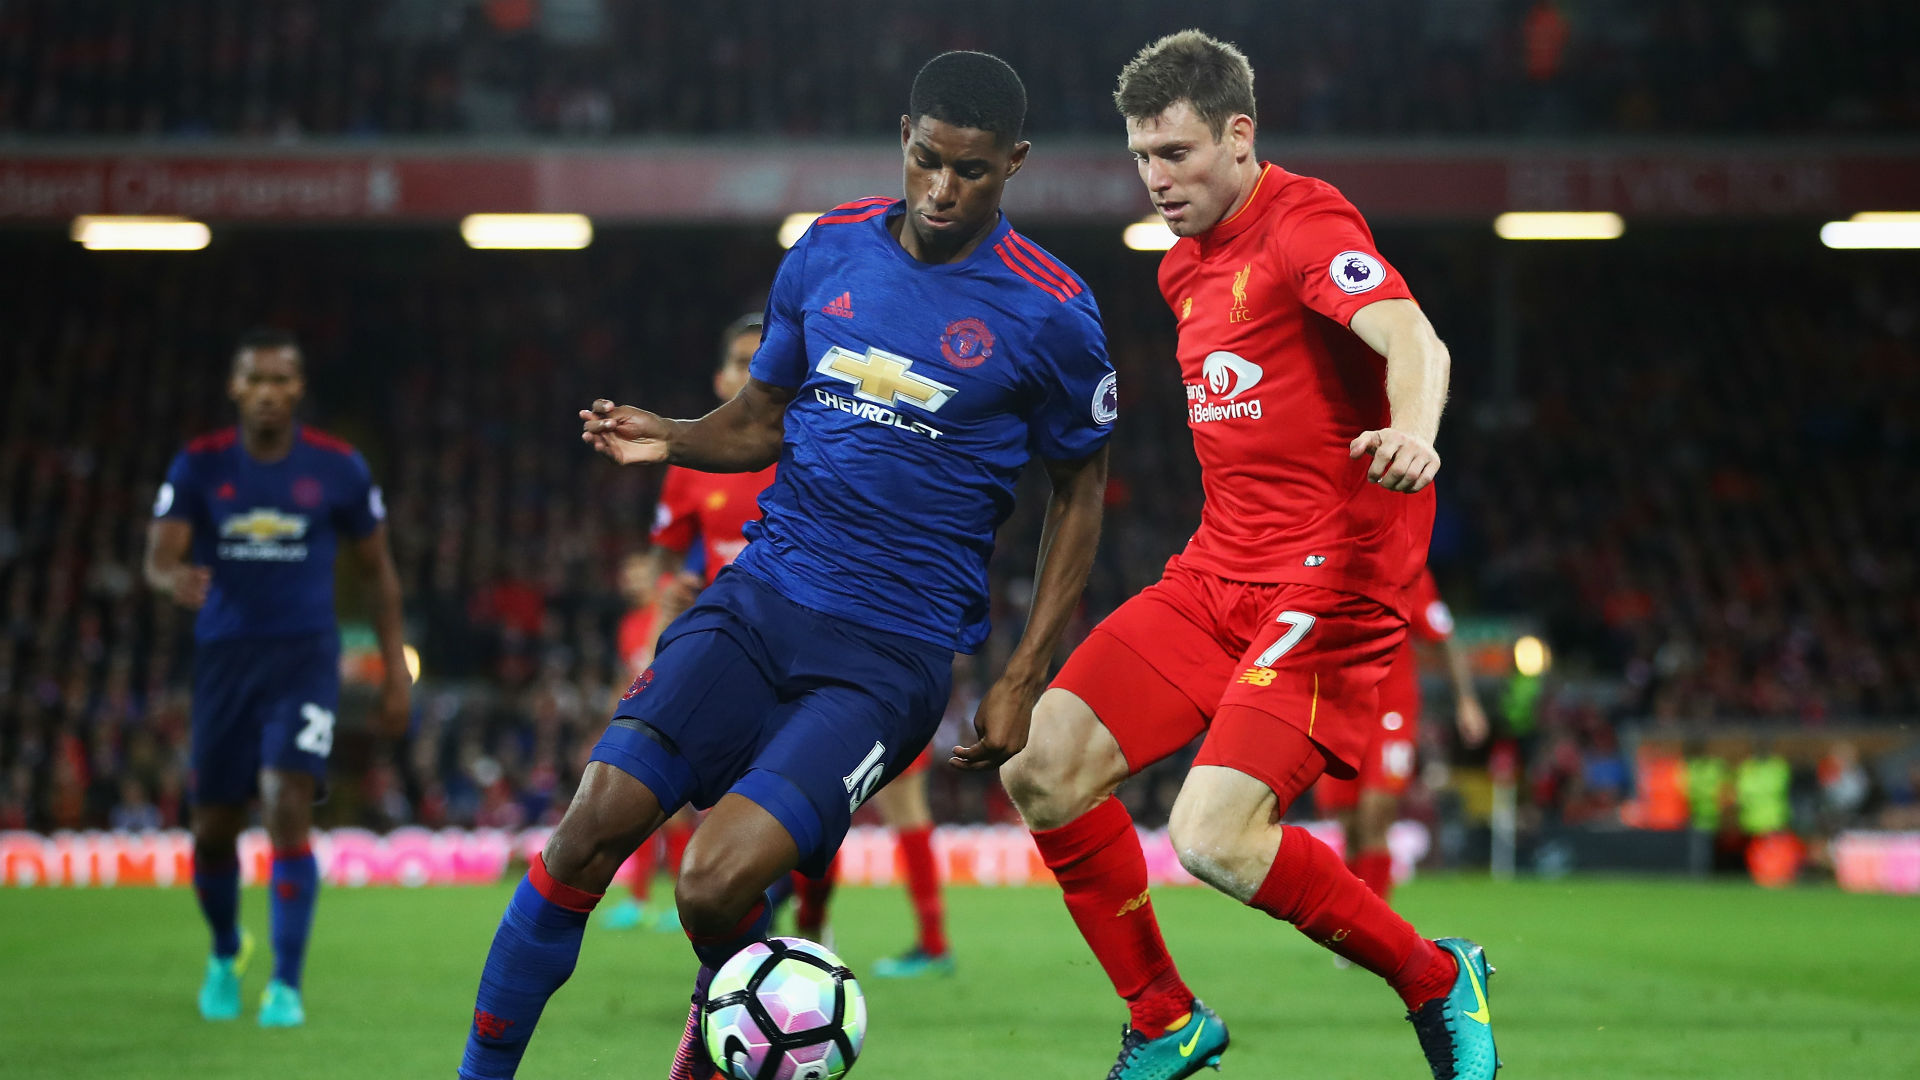 Marcus Rashford Premier League Liverpool v Manchester United 17101